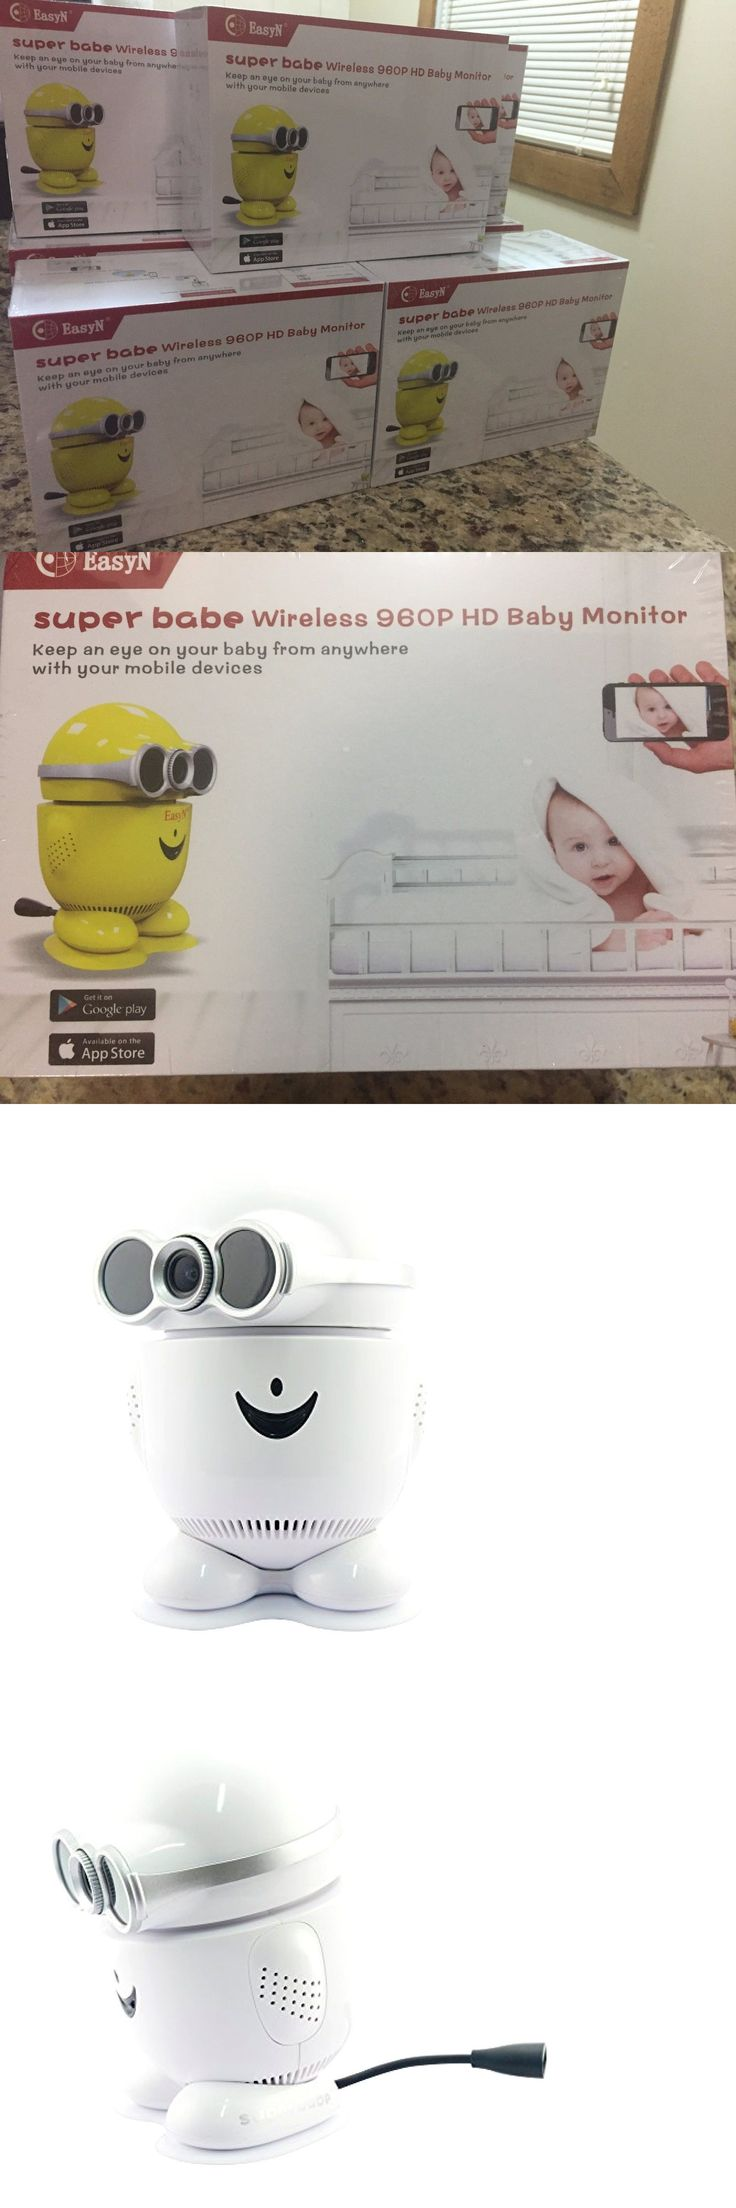 Baby Monitors 20435: Easyn Super Babe 960P Baby Monitor Wifi Wireless Ip Camera -> BUY IT NOW ONLY: $45.5 on eBay!